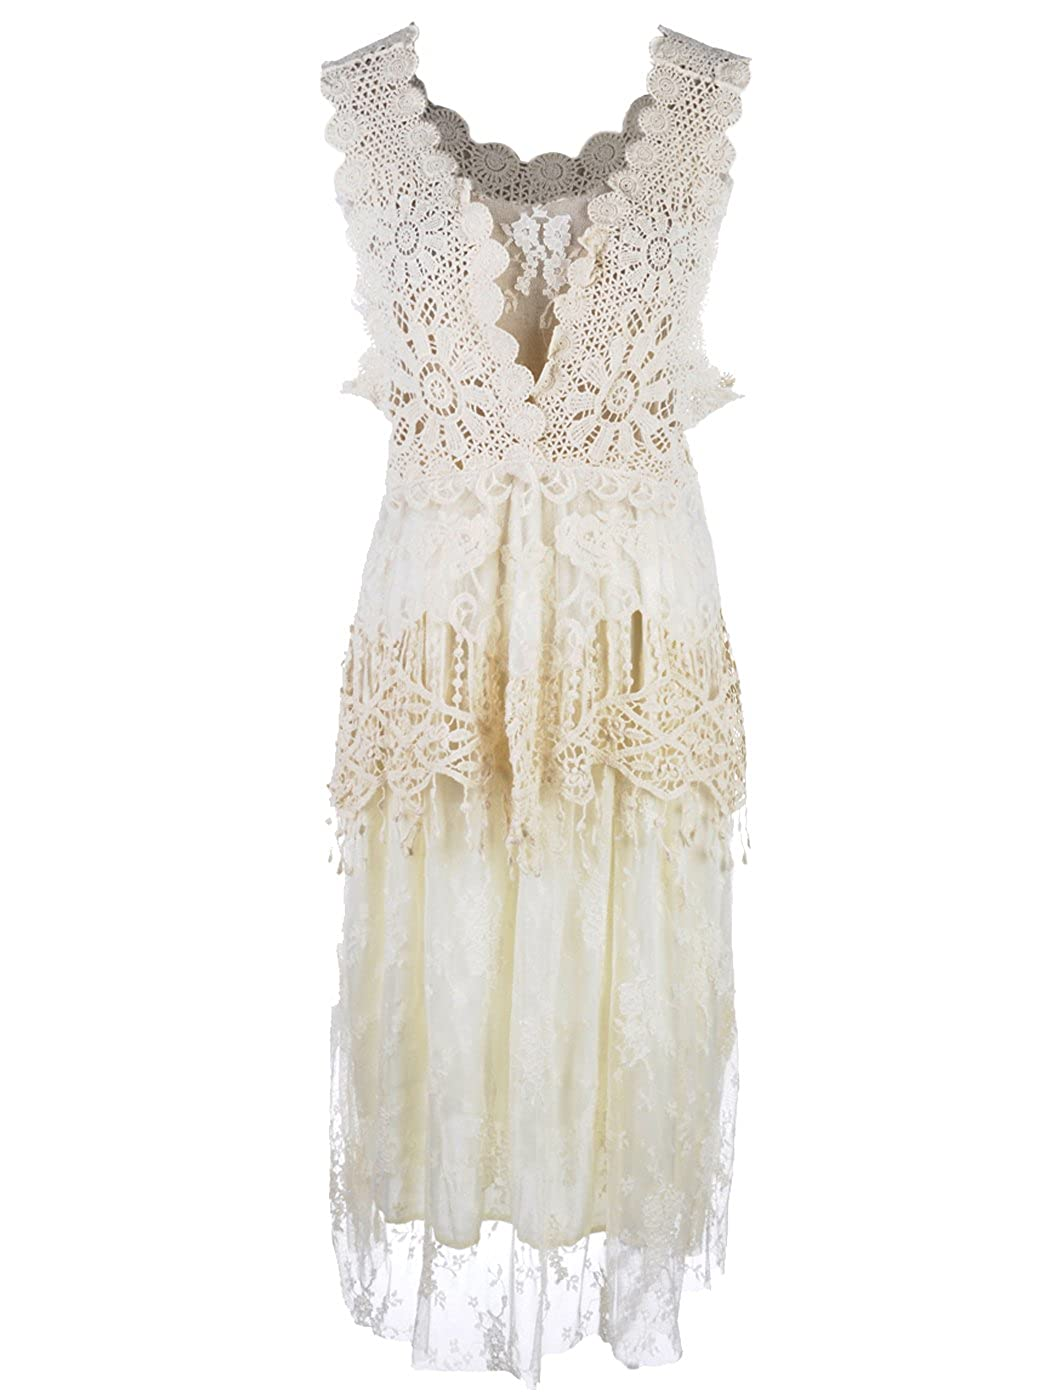 Downton Abbey Inspired Dresses Anna-Kaci Womens Vintage Granny Influence Embroidery Detail Lace Ruffle Dress $47.90 AT vintagedancer.com